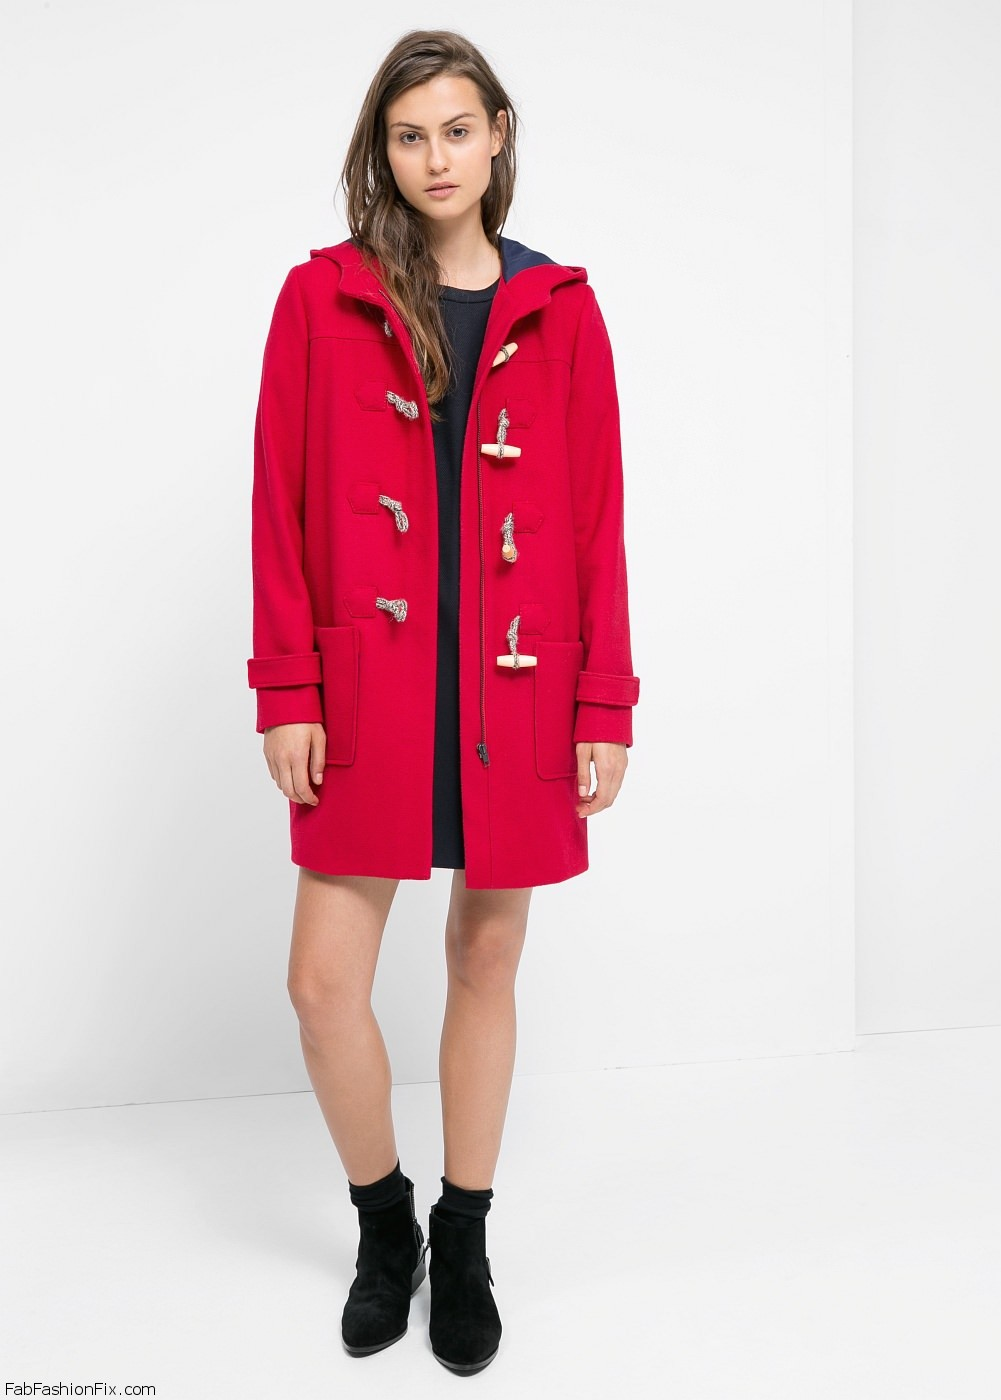 Super Style Guide: 5 classic winter coats every woman should own - Fab  LX03